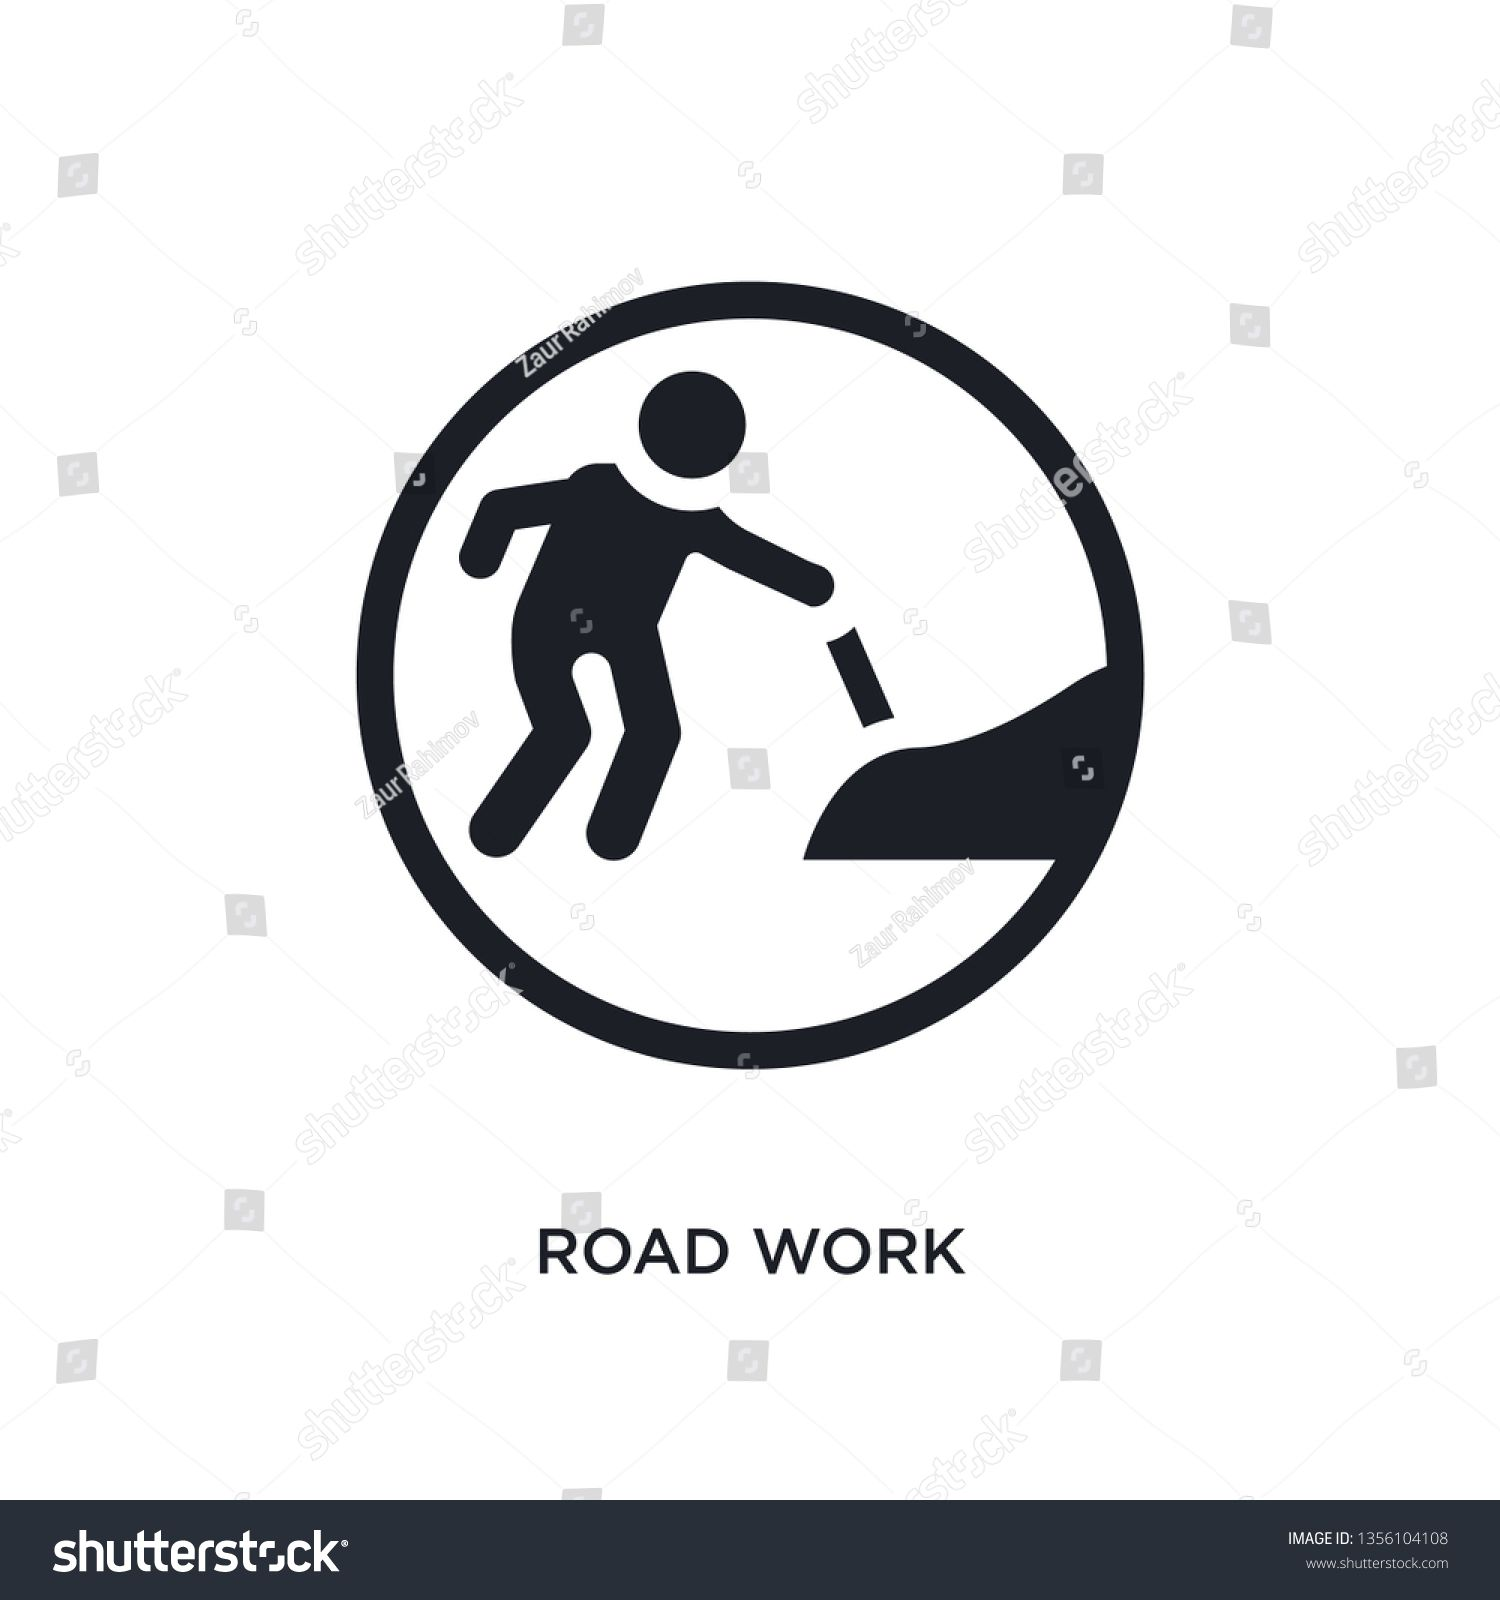 black road work isolated vector icon simple element illustration from traffic signs concept vector icons road work editable logo symbol design on white background can be...